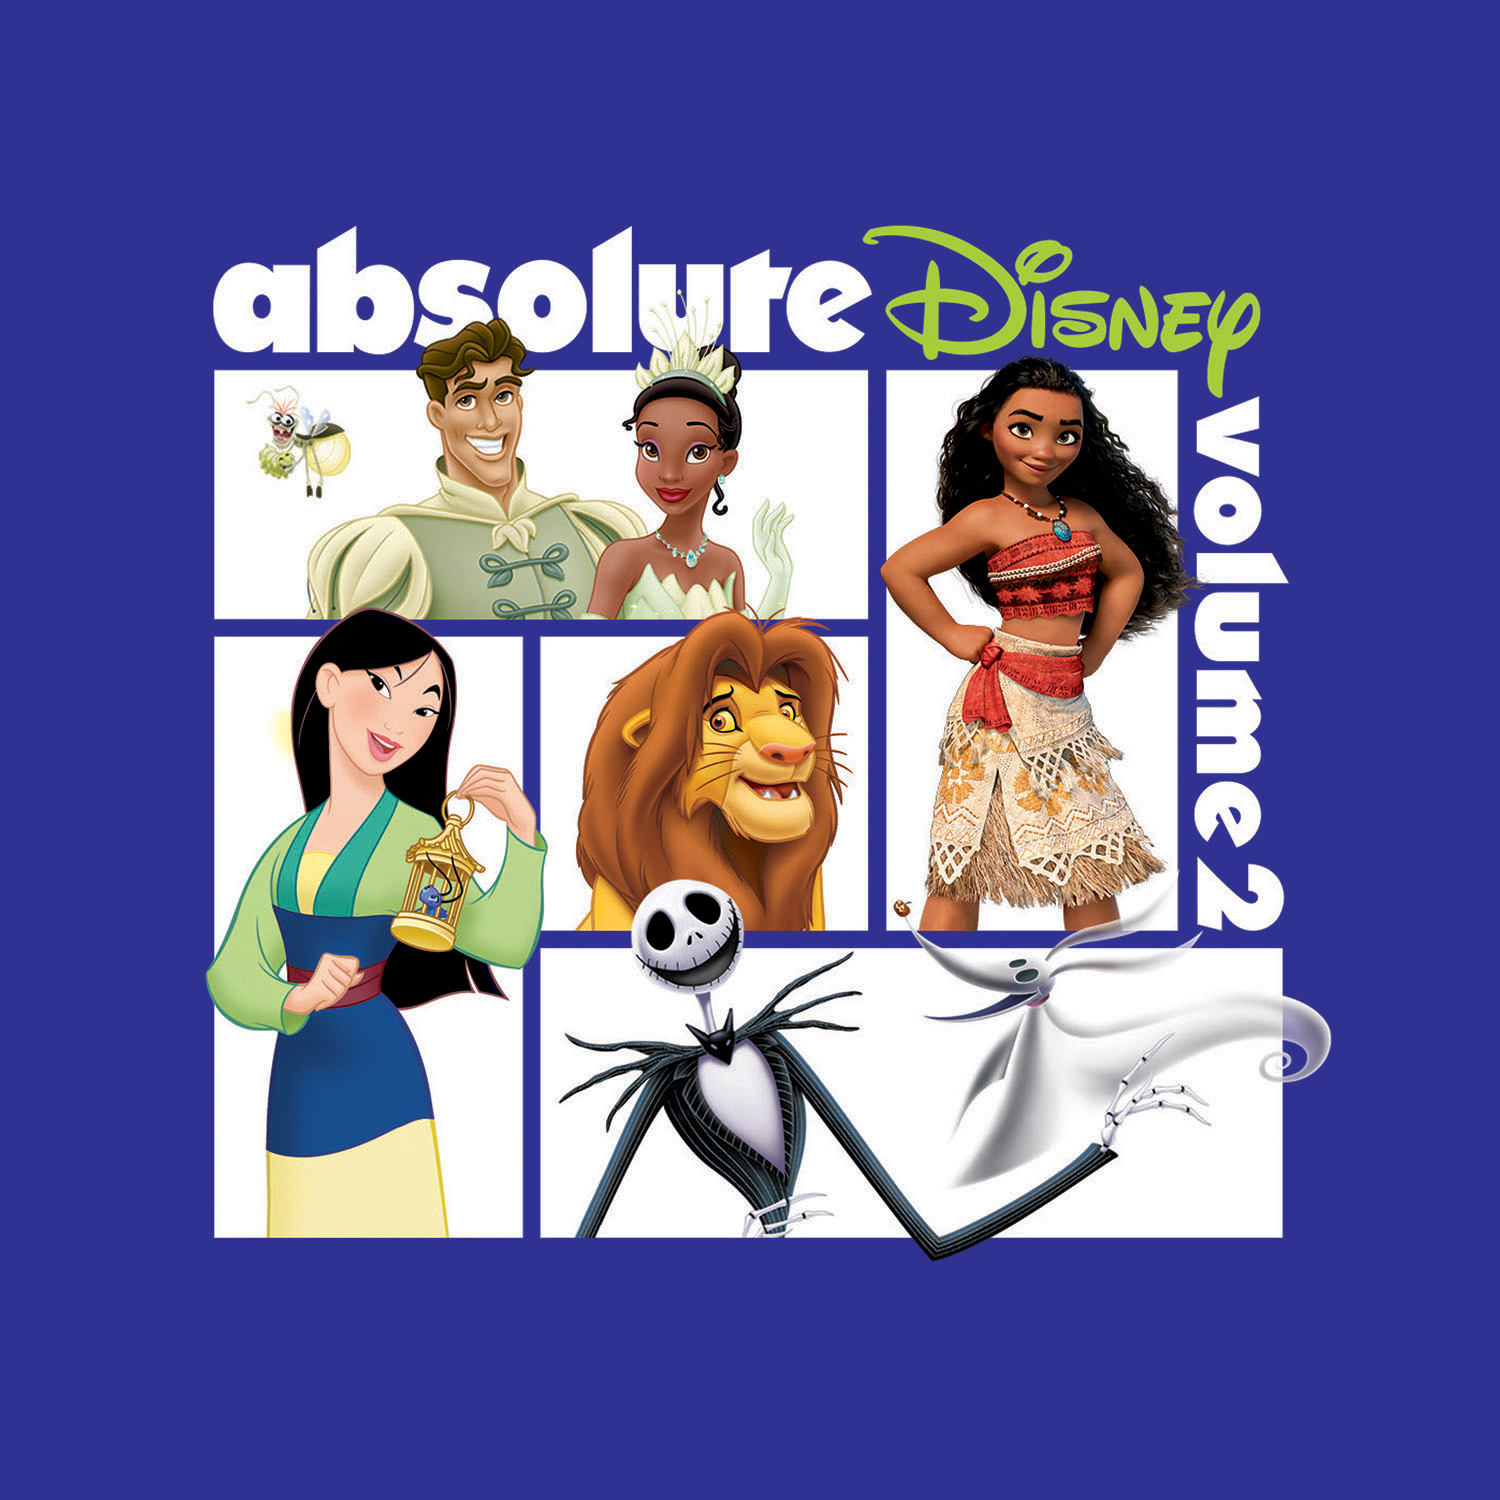 合輯-絕對迪士尼VOL.2 / ABSOLUTE DISNEY: VOLUME 2